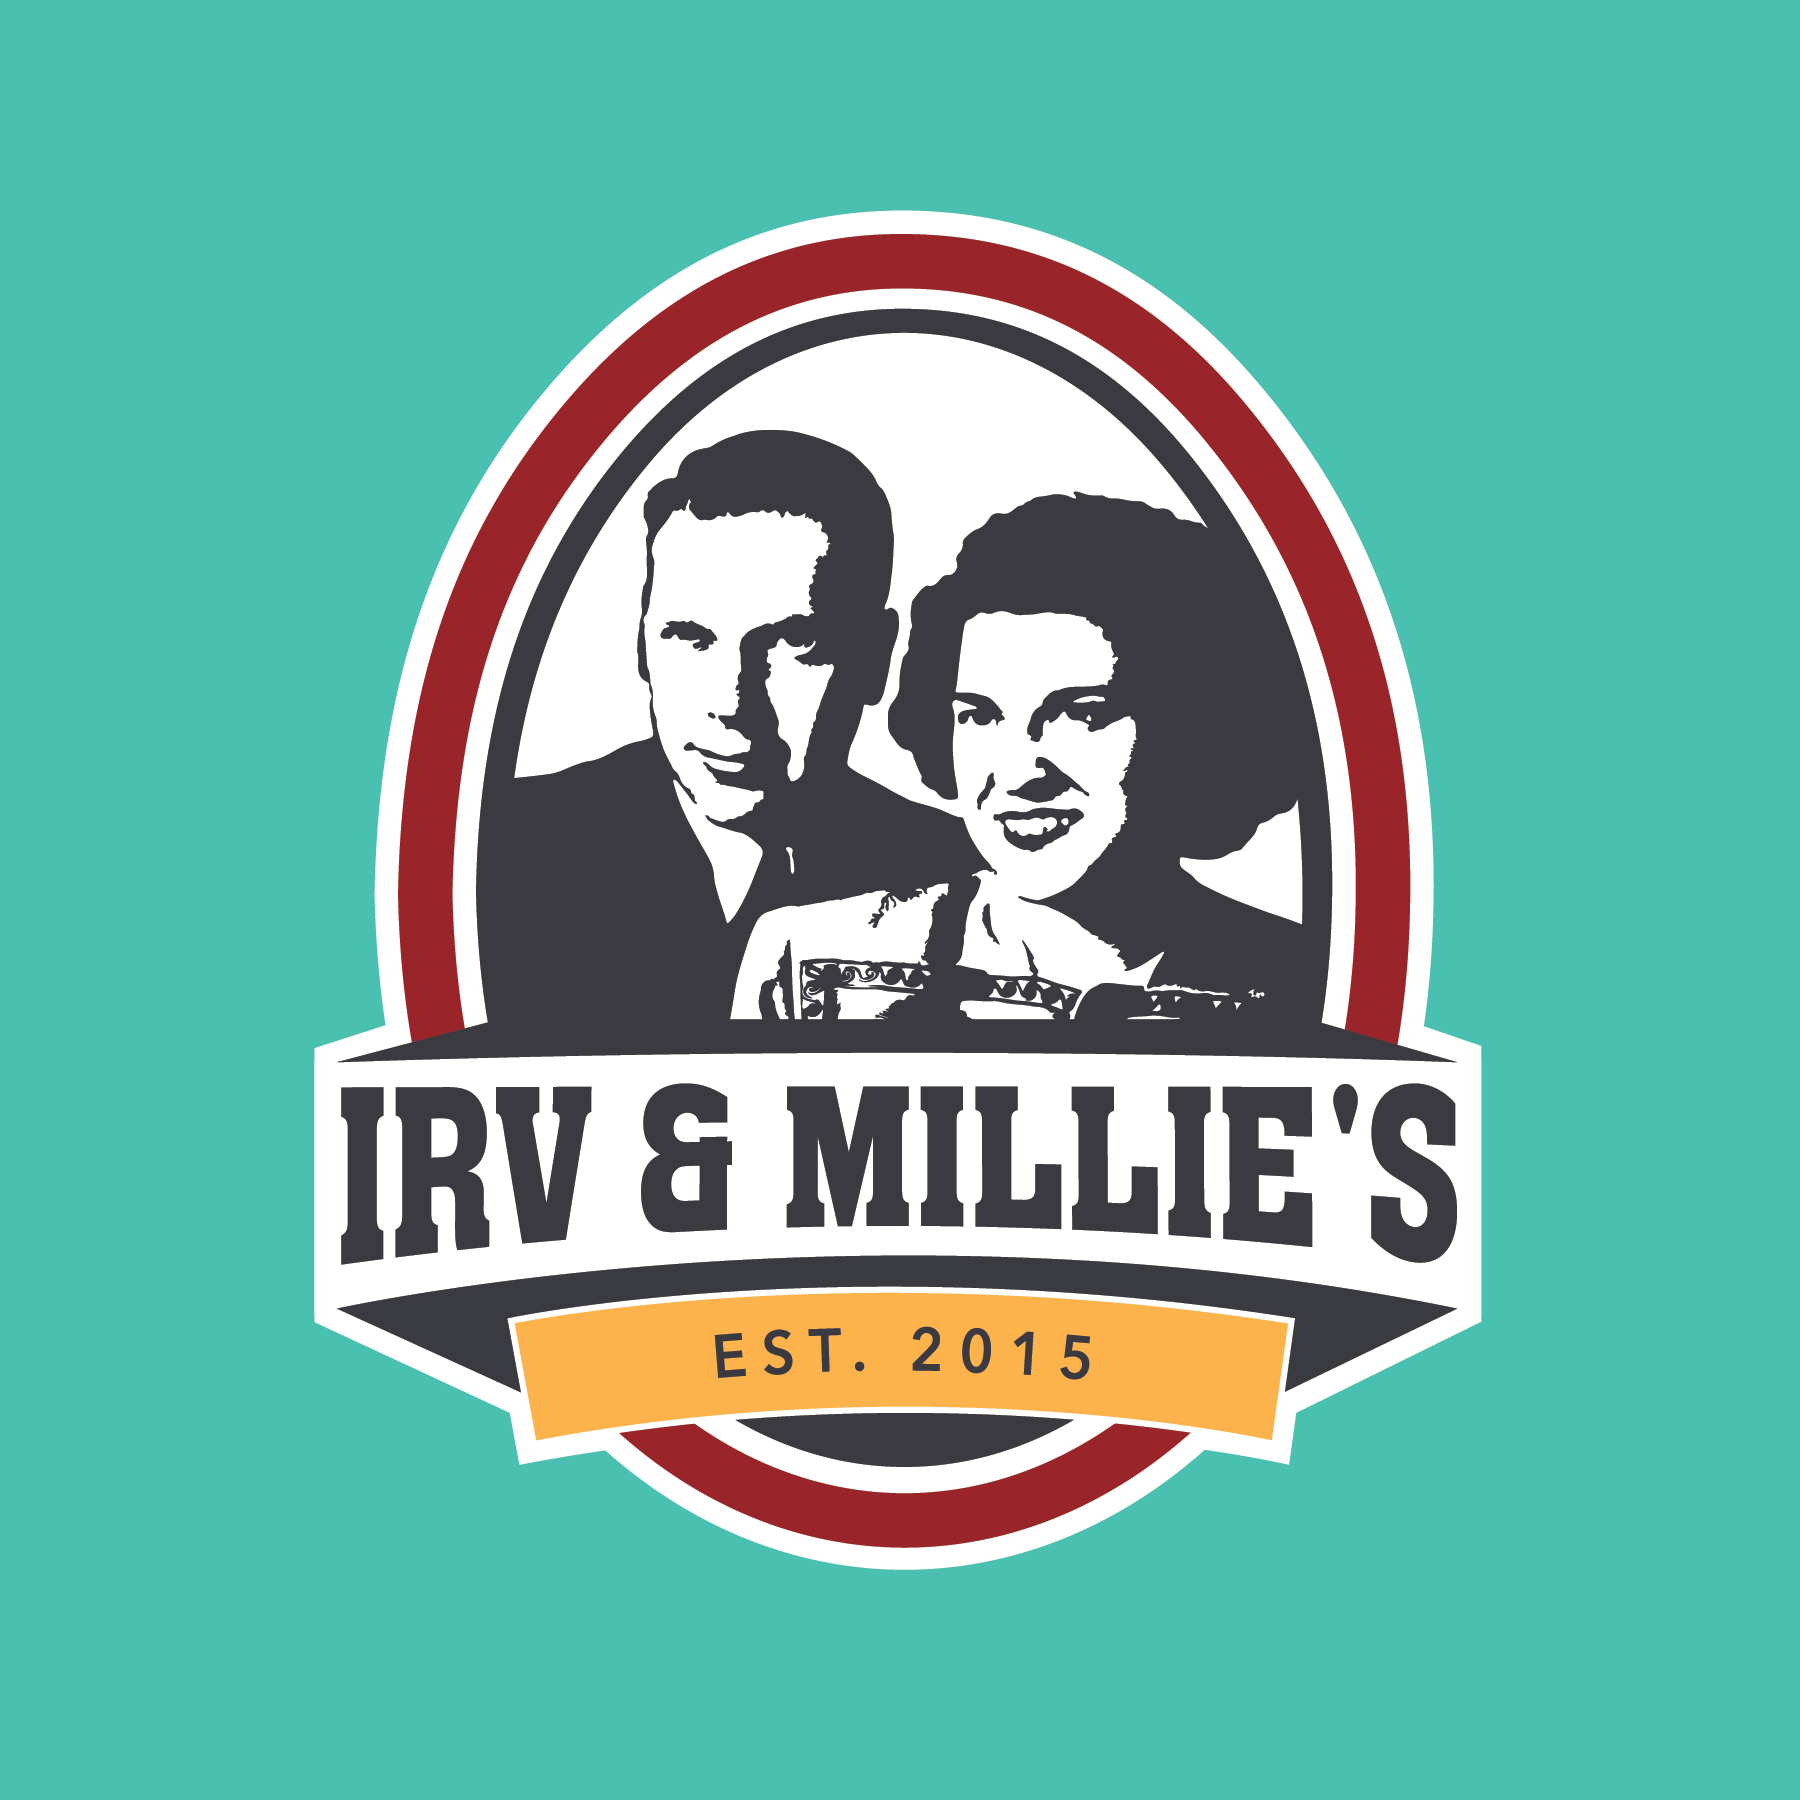 Irv and millies mead logo